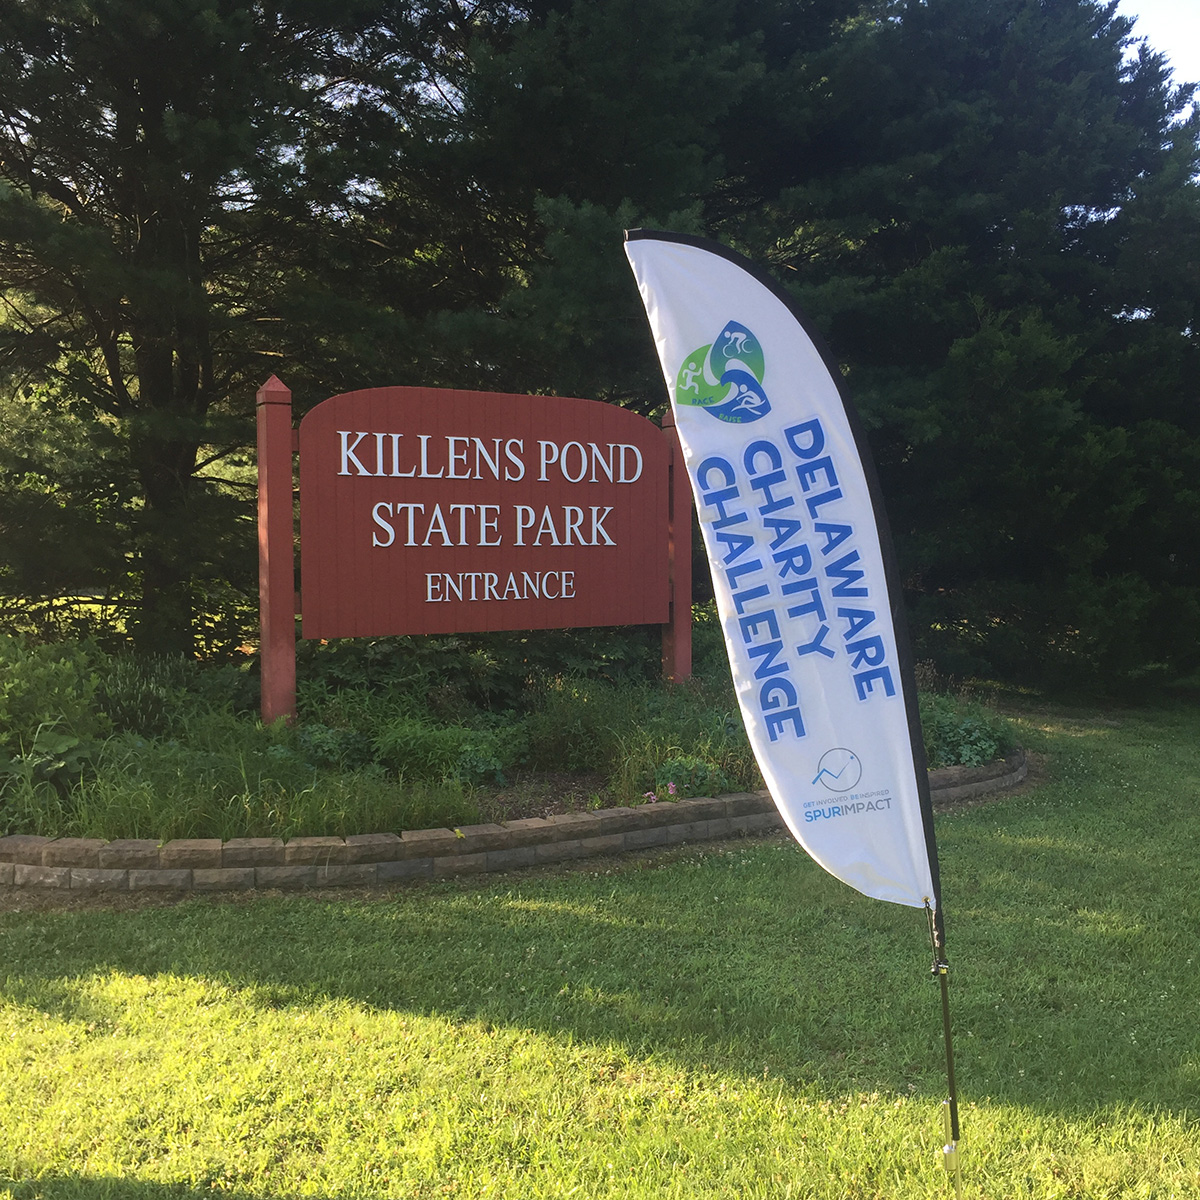 Participants in the 2nd Annual Race Across Killens Pond 5K could choose to raise money for different nonprofits they support. The top two fundraising teams combined to raise more than $1,000 for Combined Campaign for Justice and First State Animal Center and SPCA.